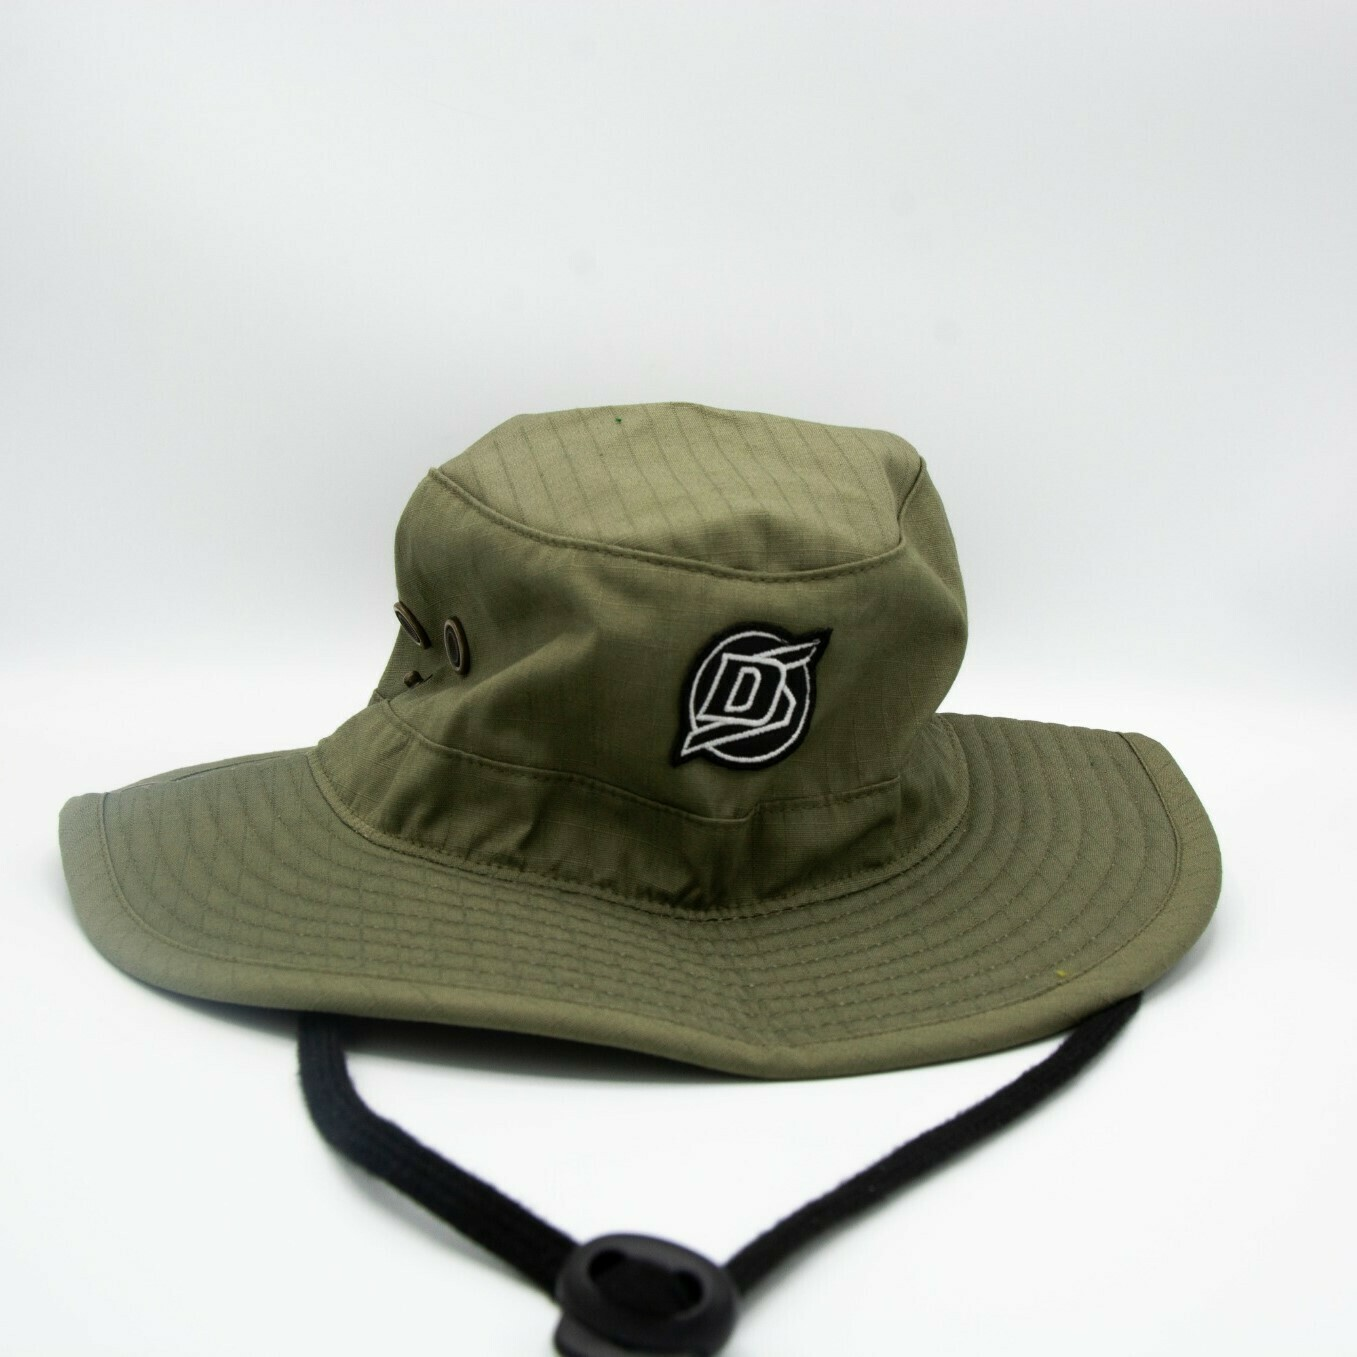 DS Angler Hat